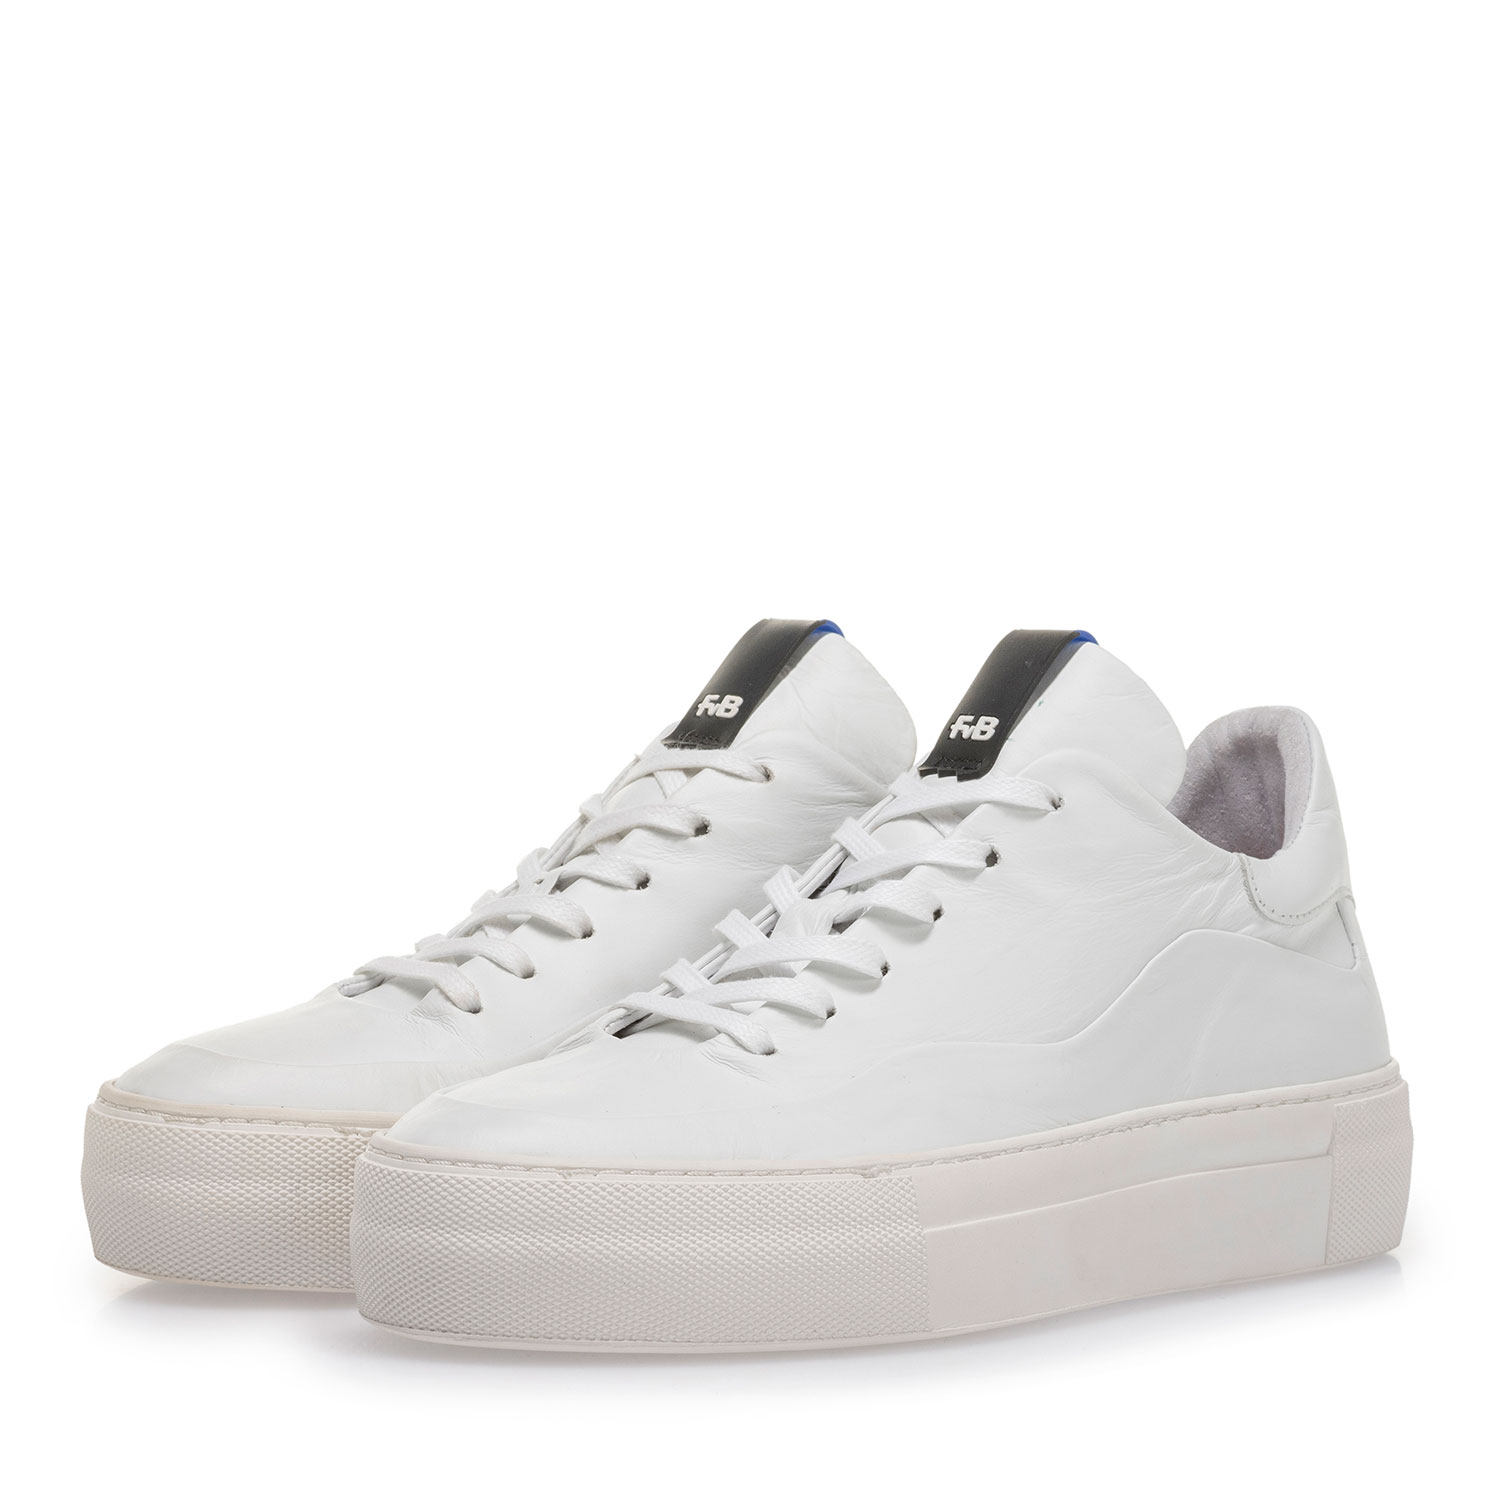 85298/00 - White leather sneaker